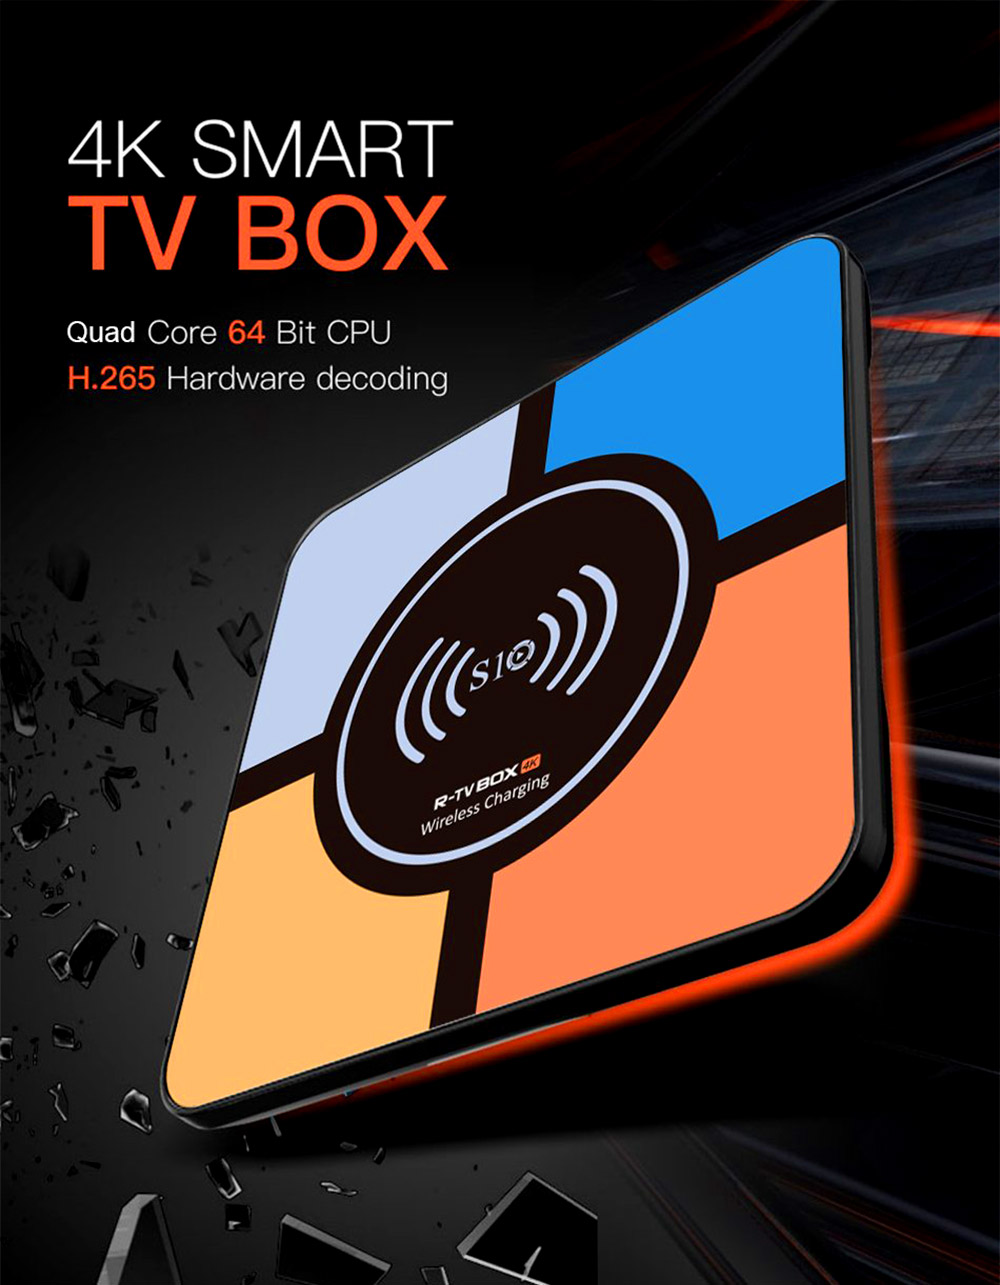 Tinkleo S10 PLUS Smart TV Box Fast Wireless Charge 4G 32GB RK3328 Android 8.0 3D 4K USB 3.0 Wifi R-TV Box Network Player Wireless Charging Bank 6